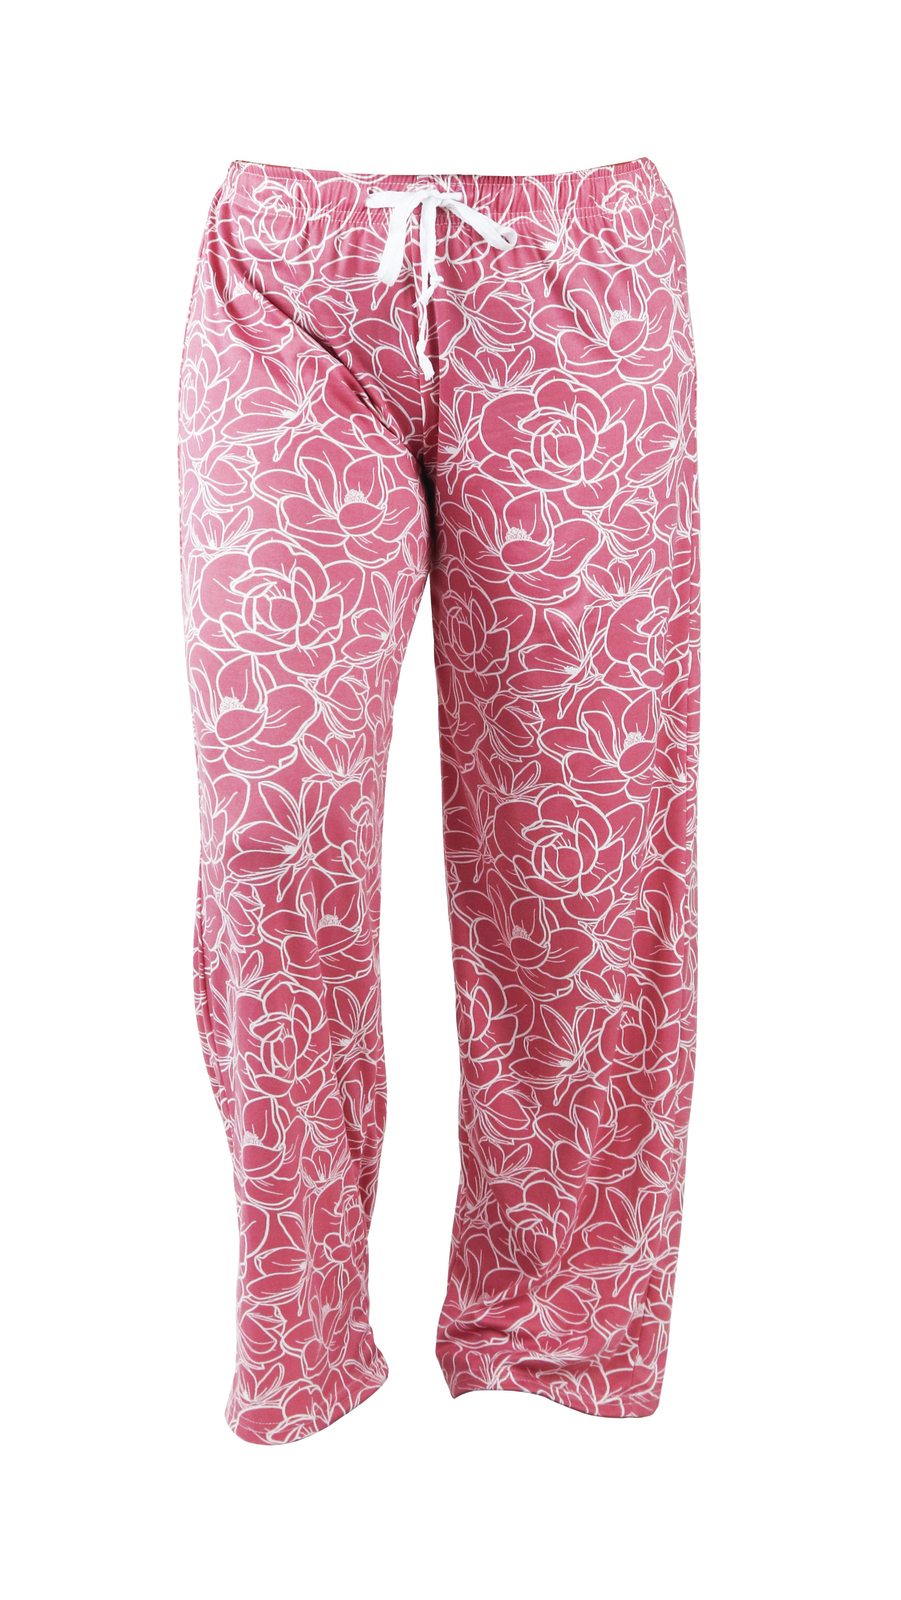 Hello Mello: Breakfast in Bed Lounge Pants - S-M image